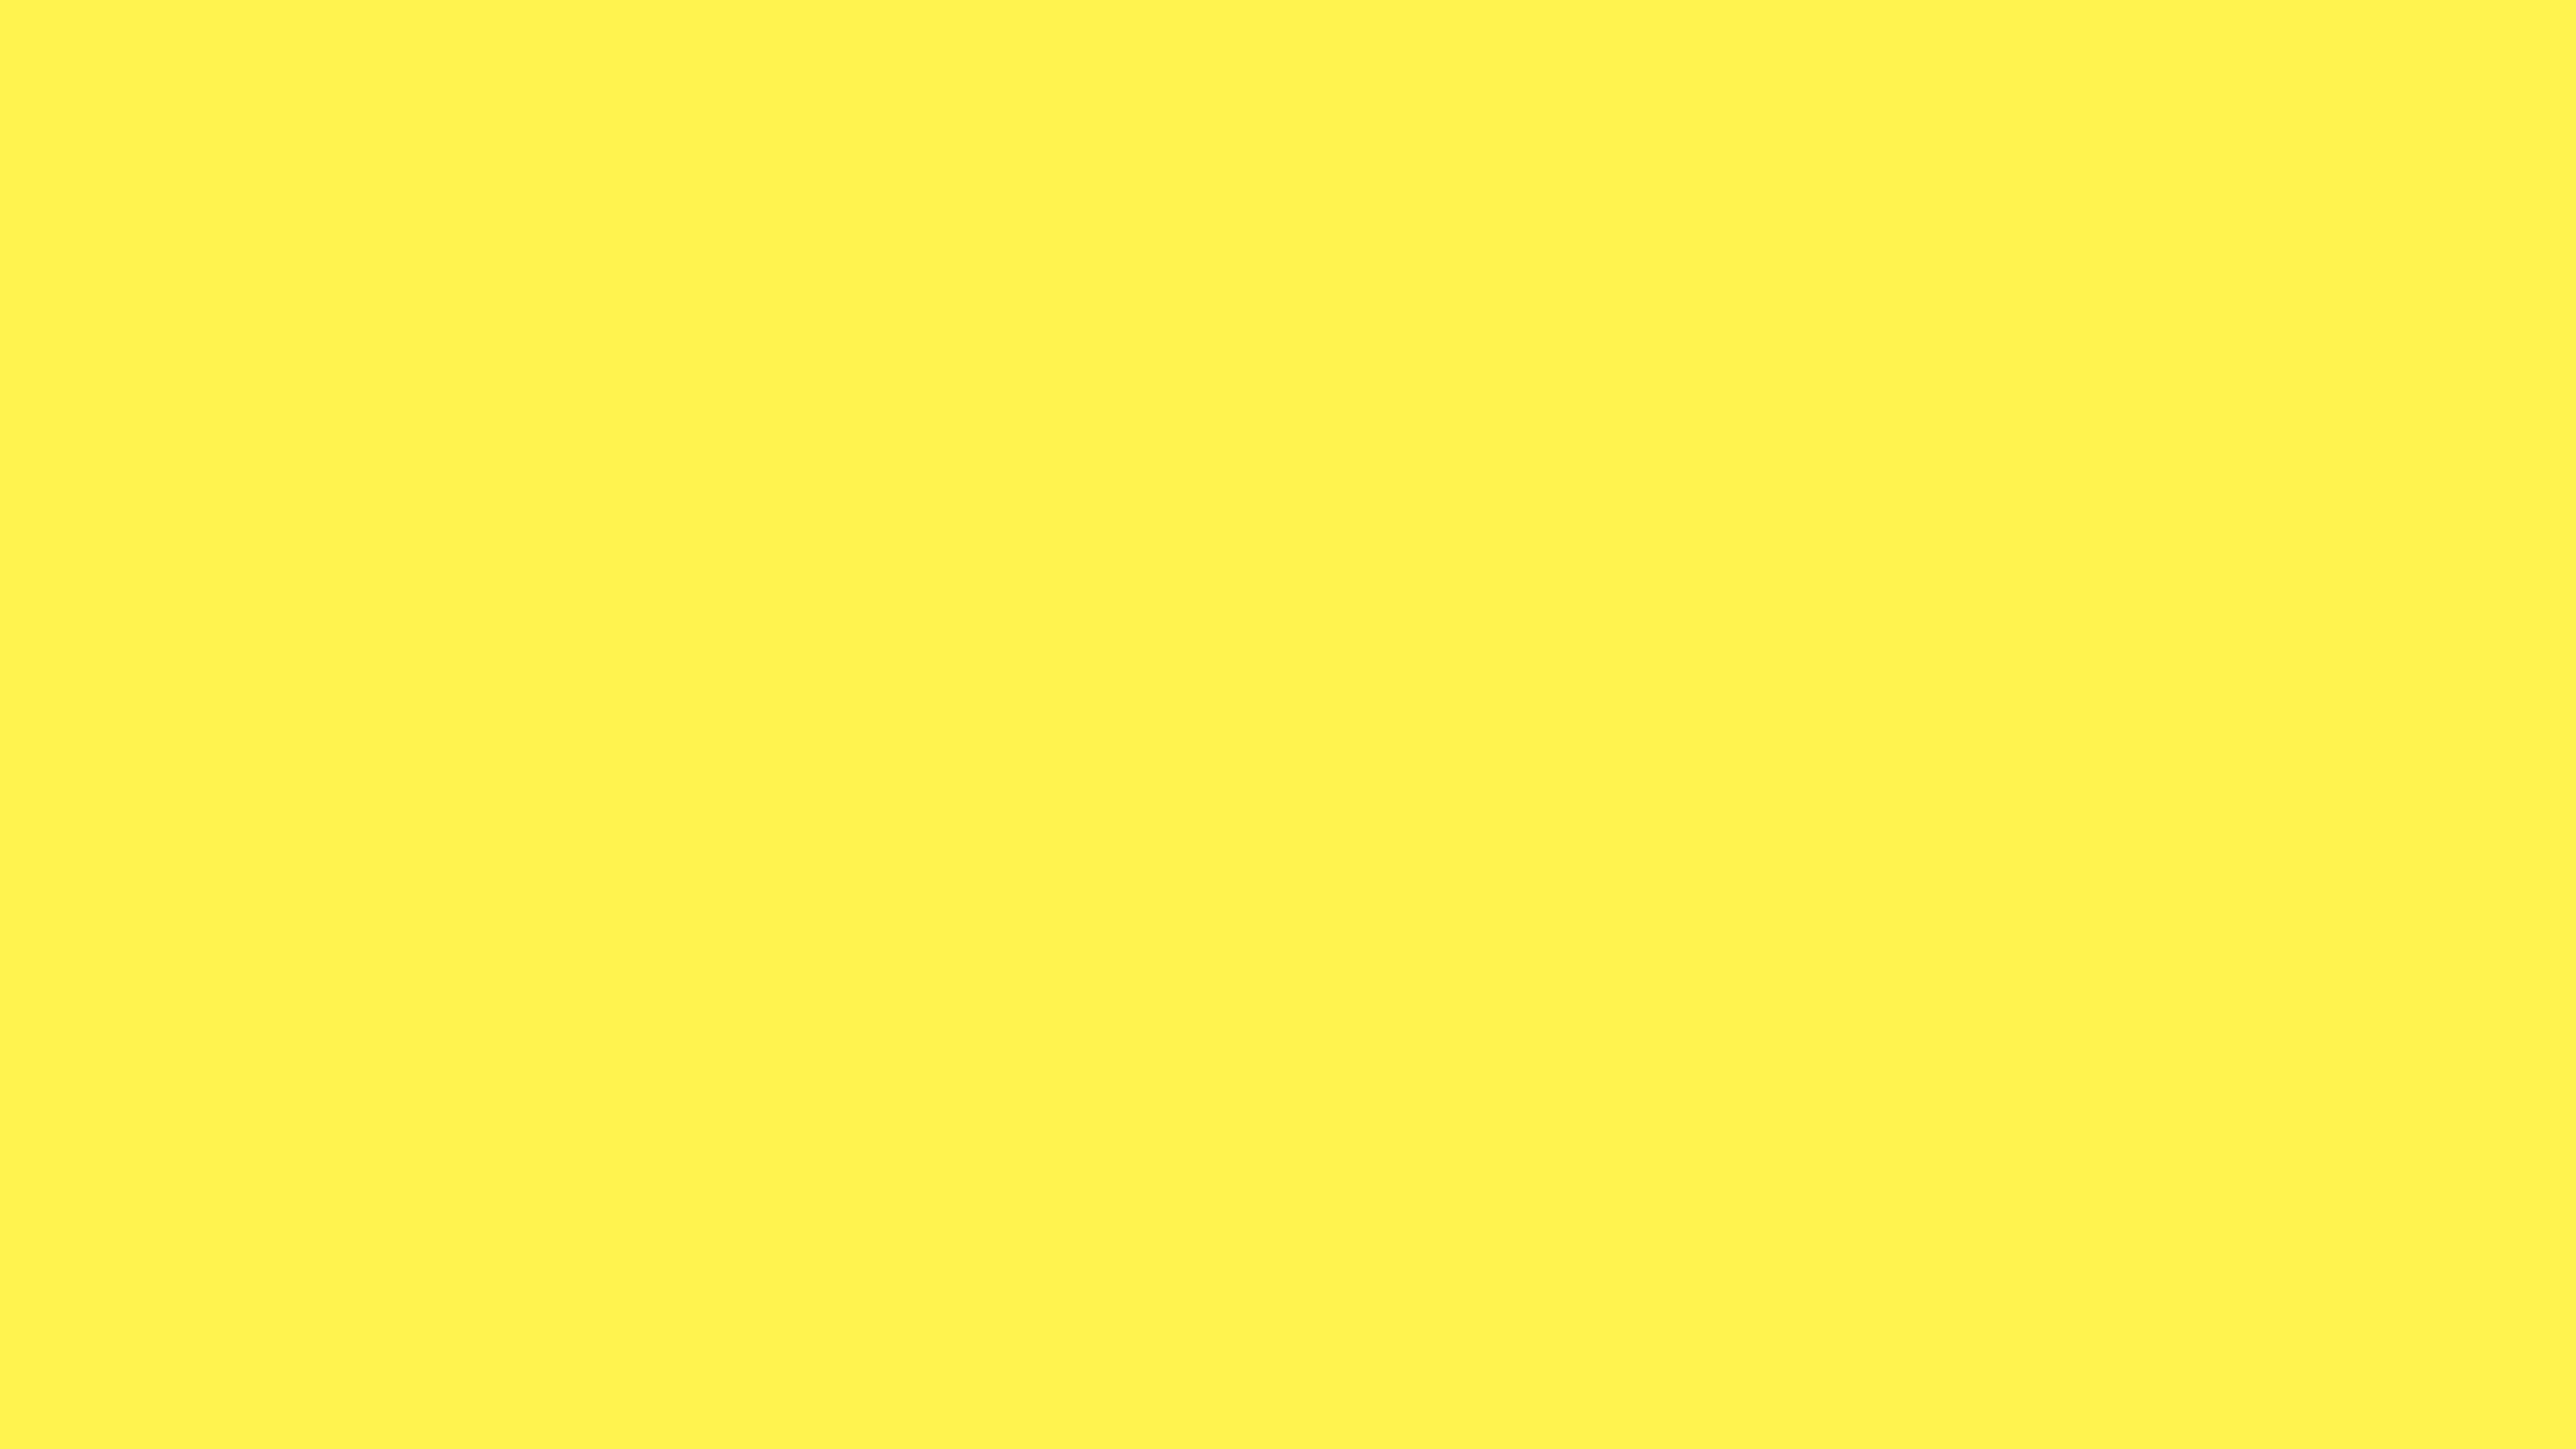 4096x2304 Lemon Yellow Solid Color Background